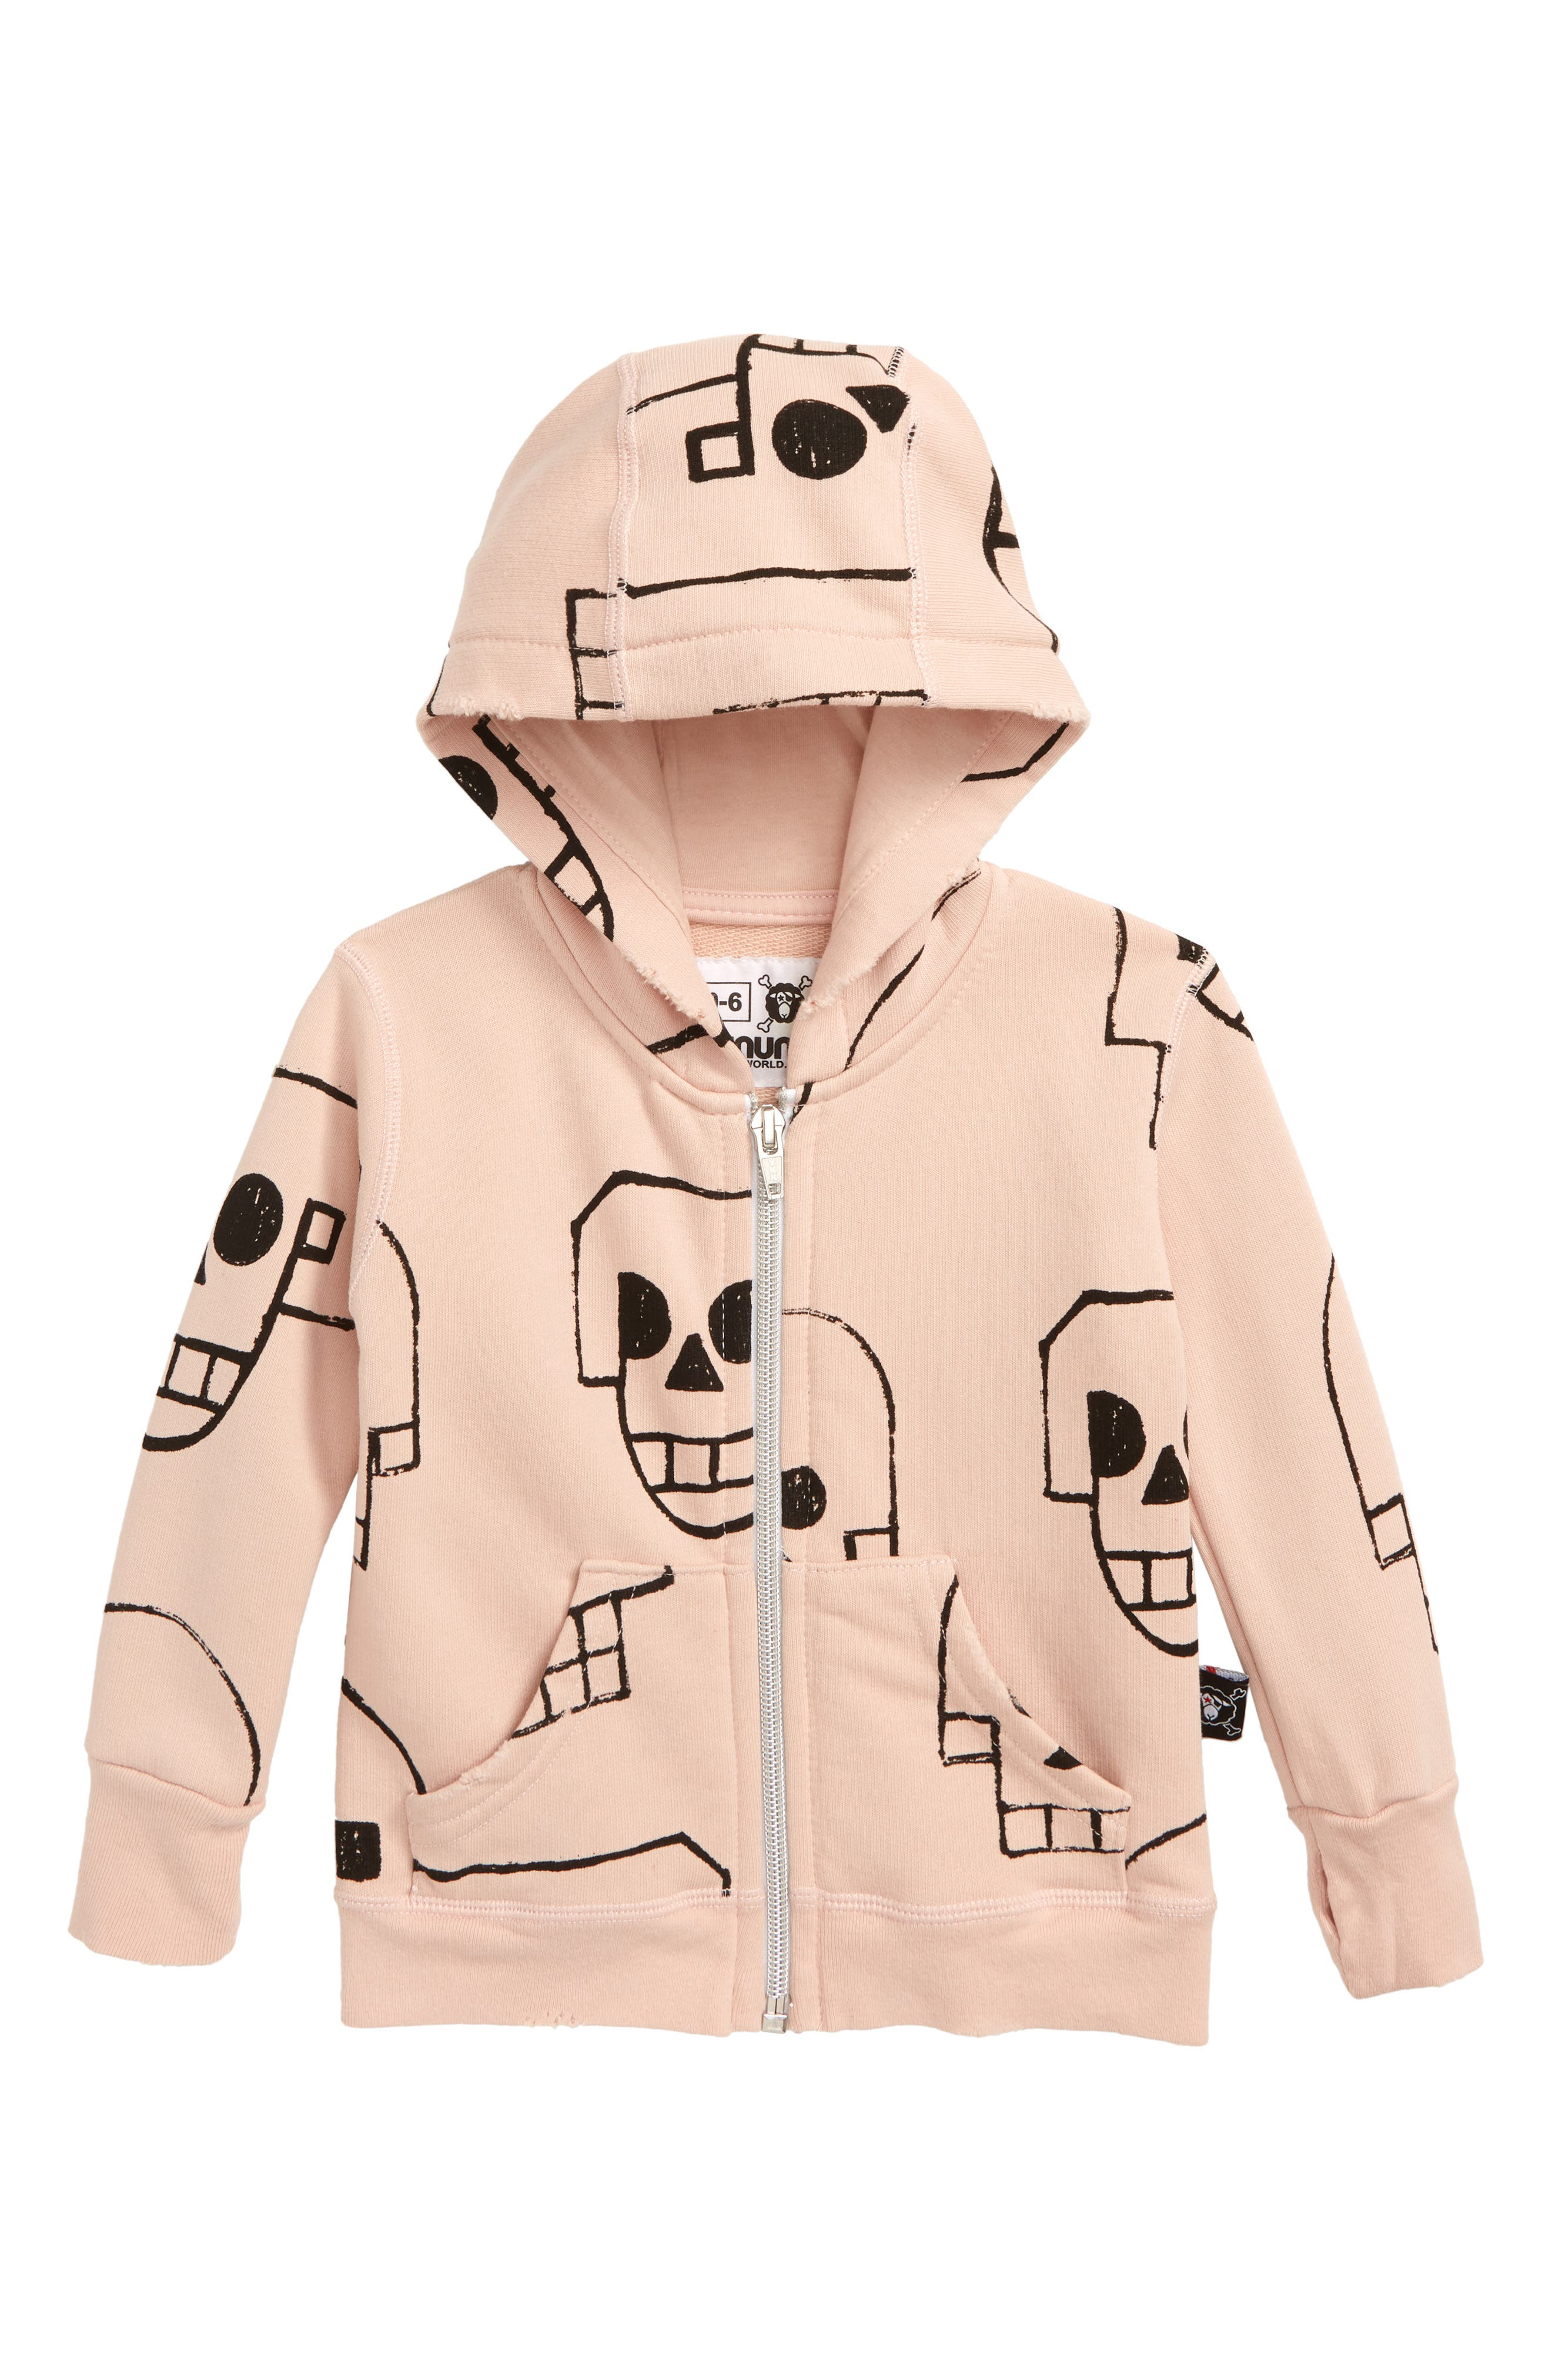 Skull Robot Zip Hoodie,                         Main,                         color, POWDER PINK